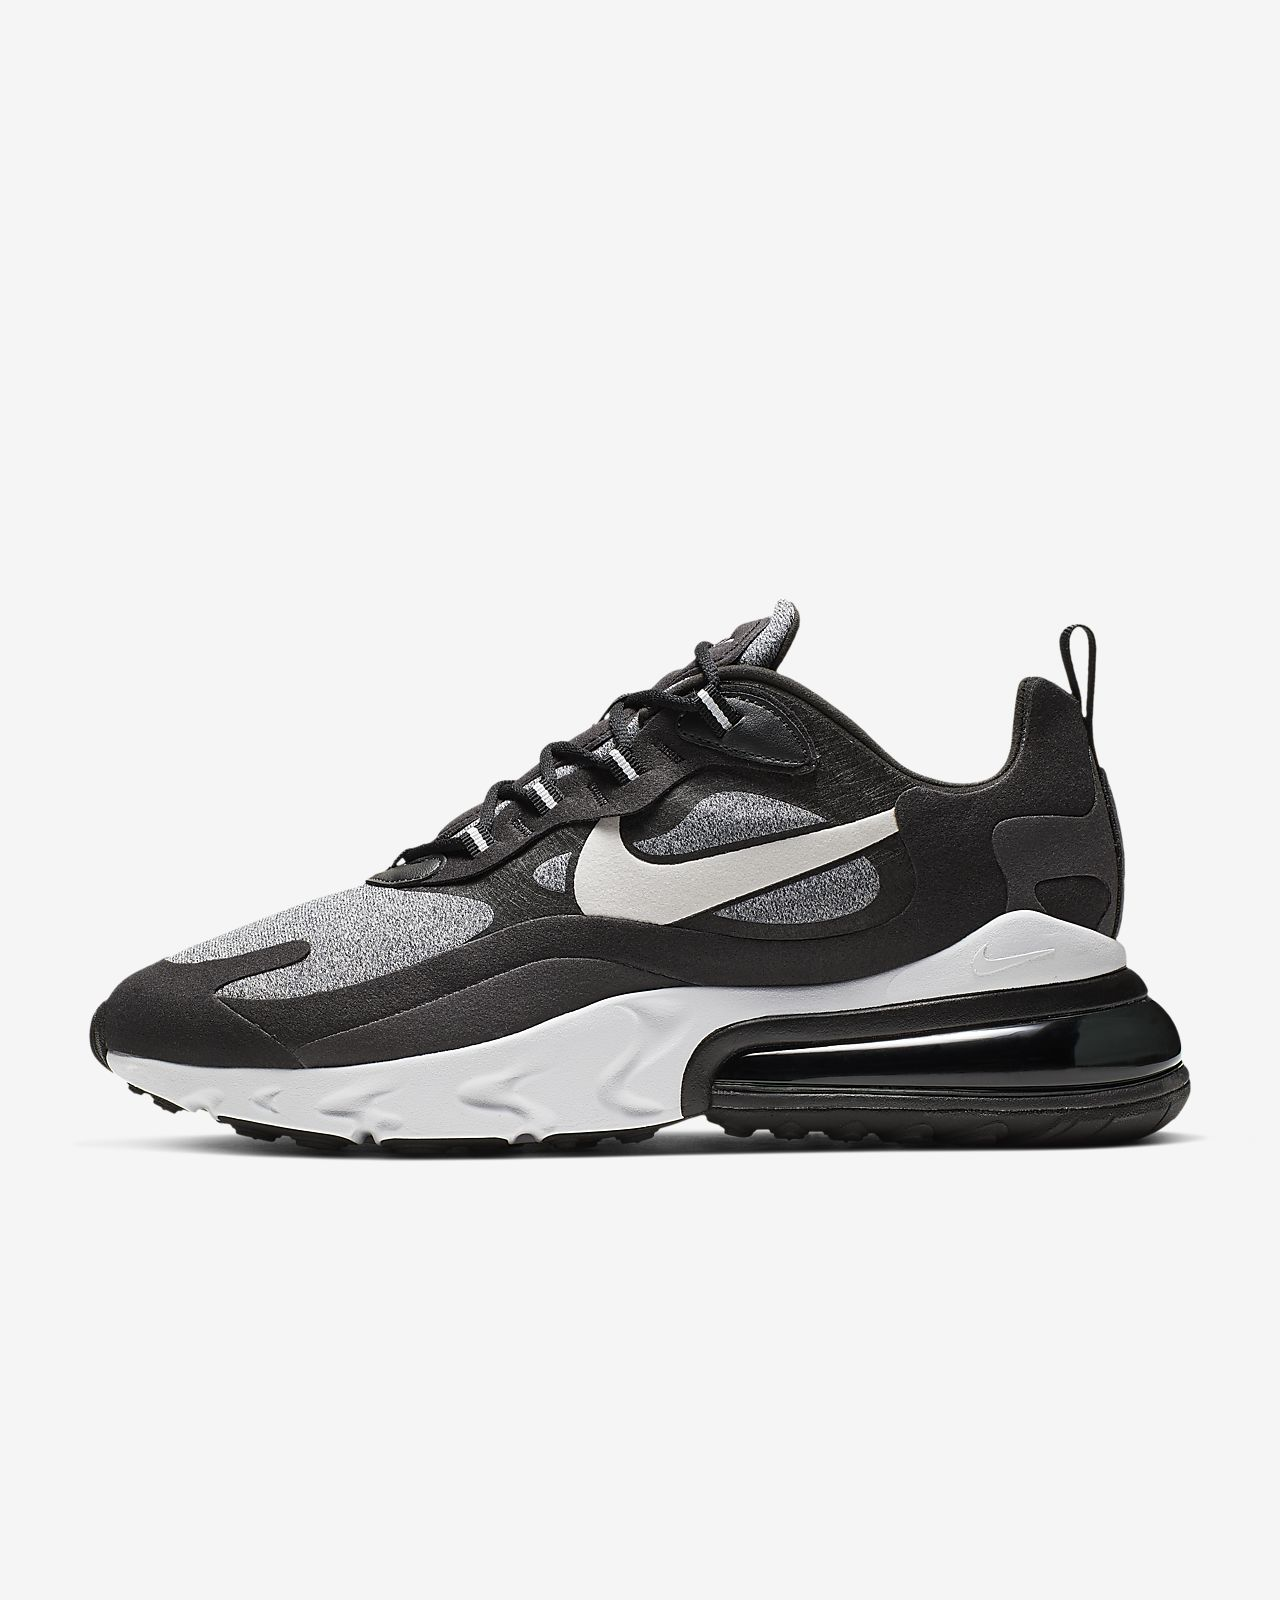 55 Best Air Max shoes images | Air max, Nike air max, Cheap